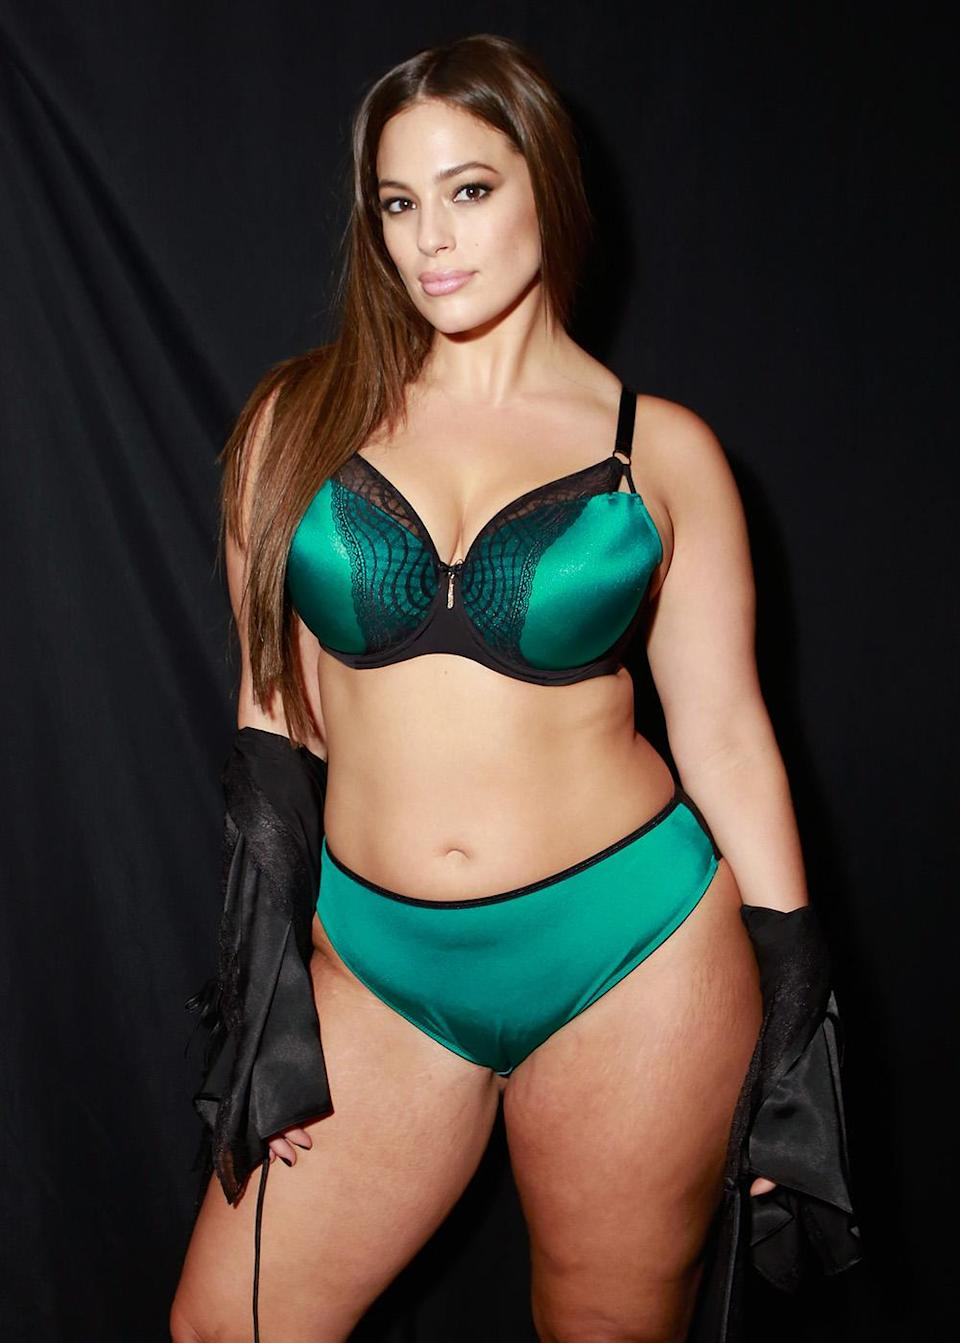 Ashley Graham poses in lingerie from her eponymous collection. (Photo: Getty Images)